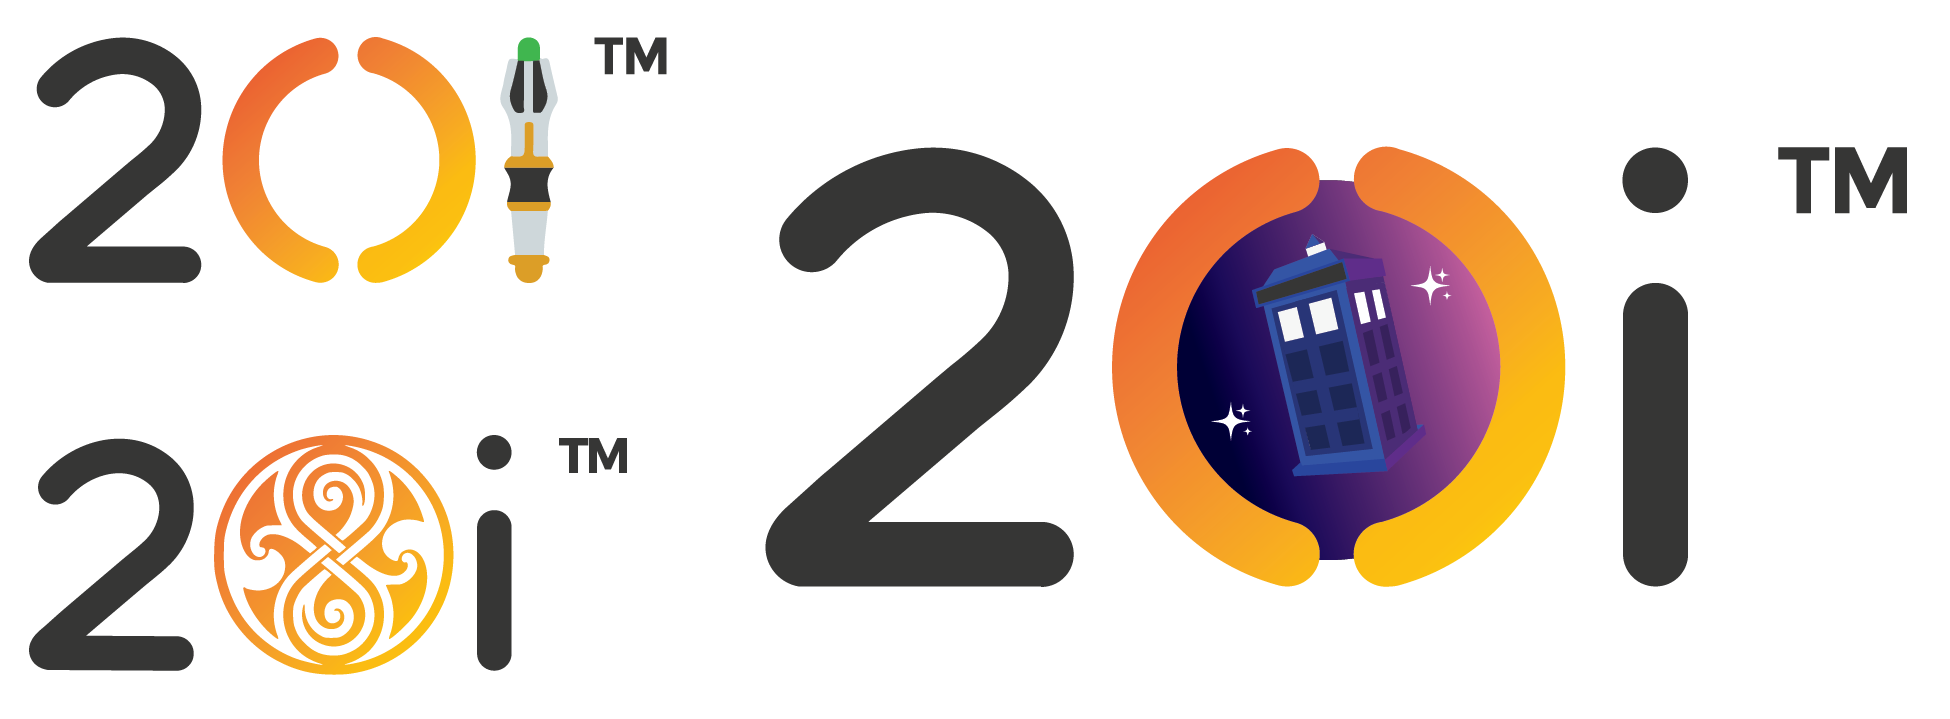 Some alternative Doctor Who-themed designs for the 20i logo